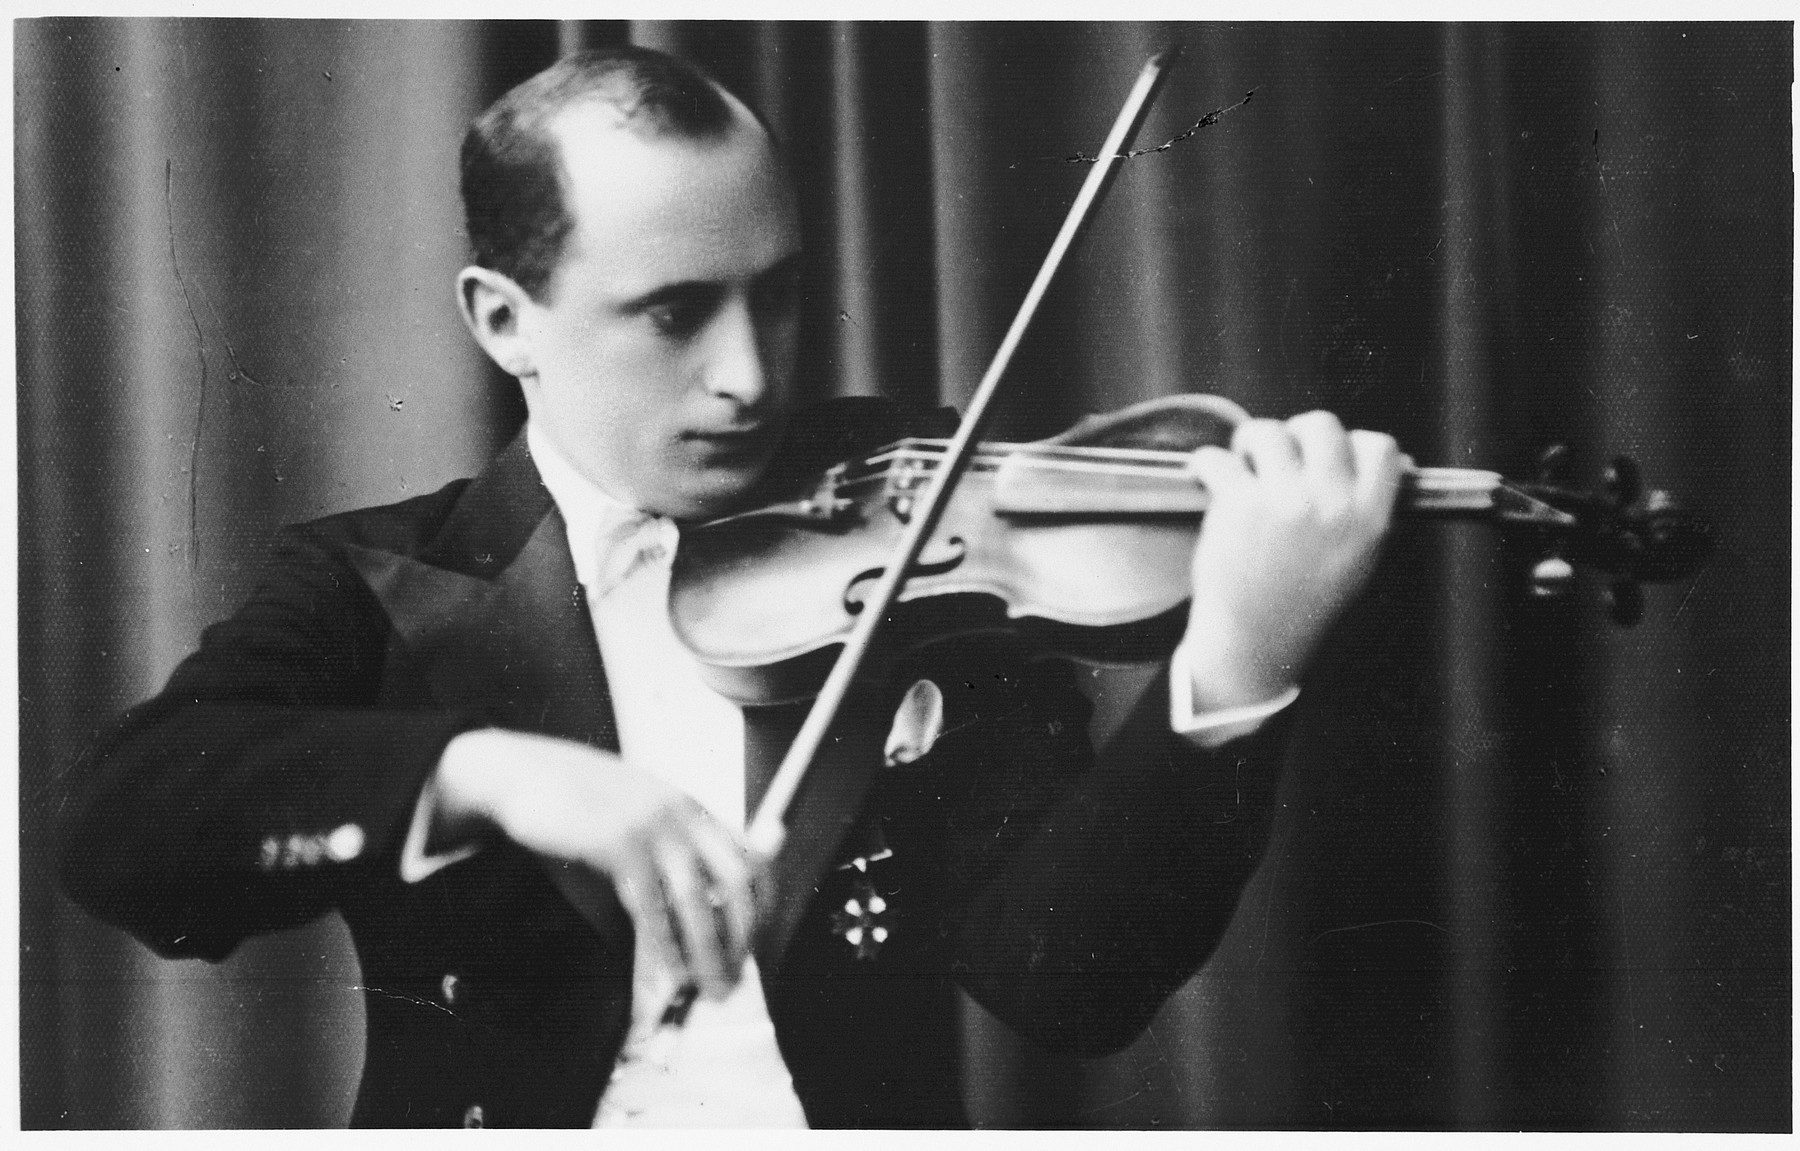 Portrait of Jewish musician Michael Hofmekler playing the violin.